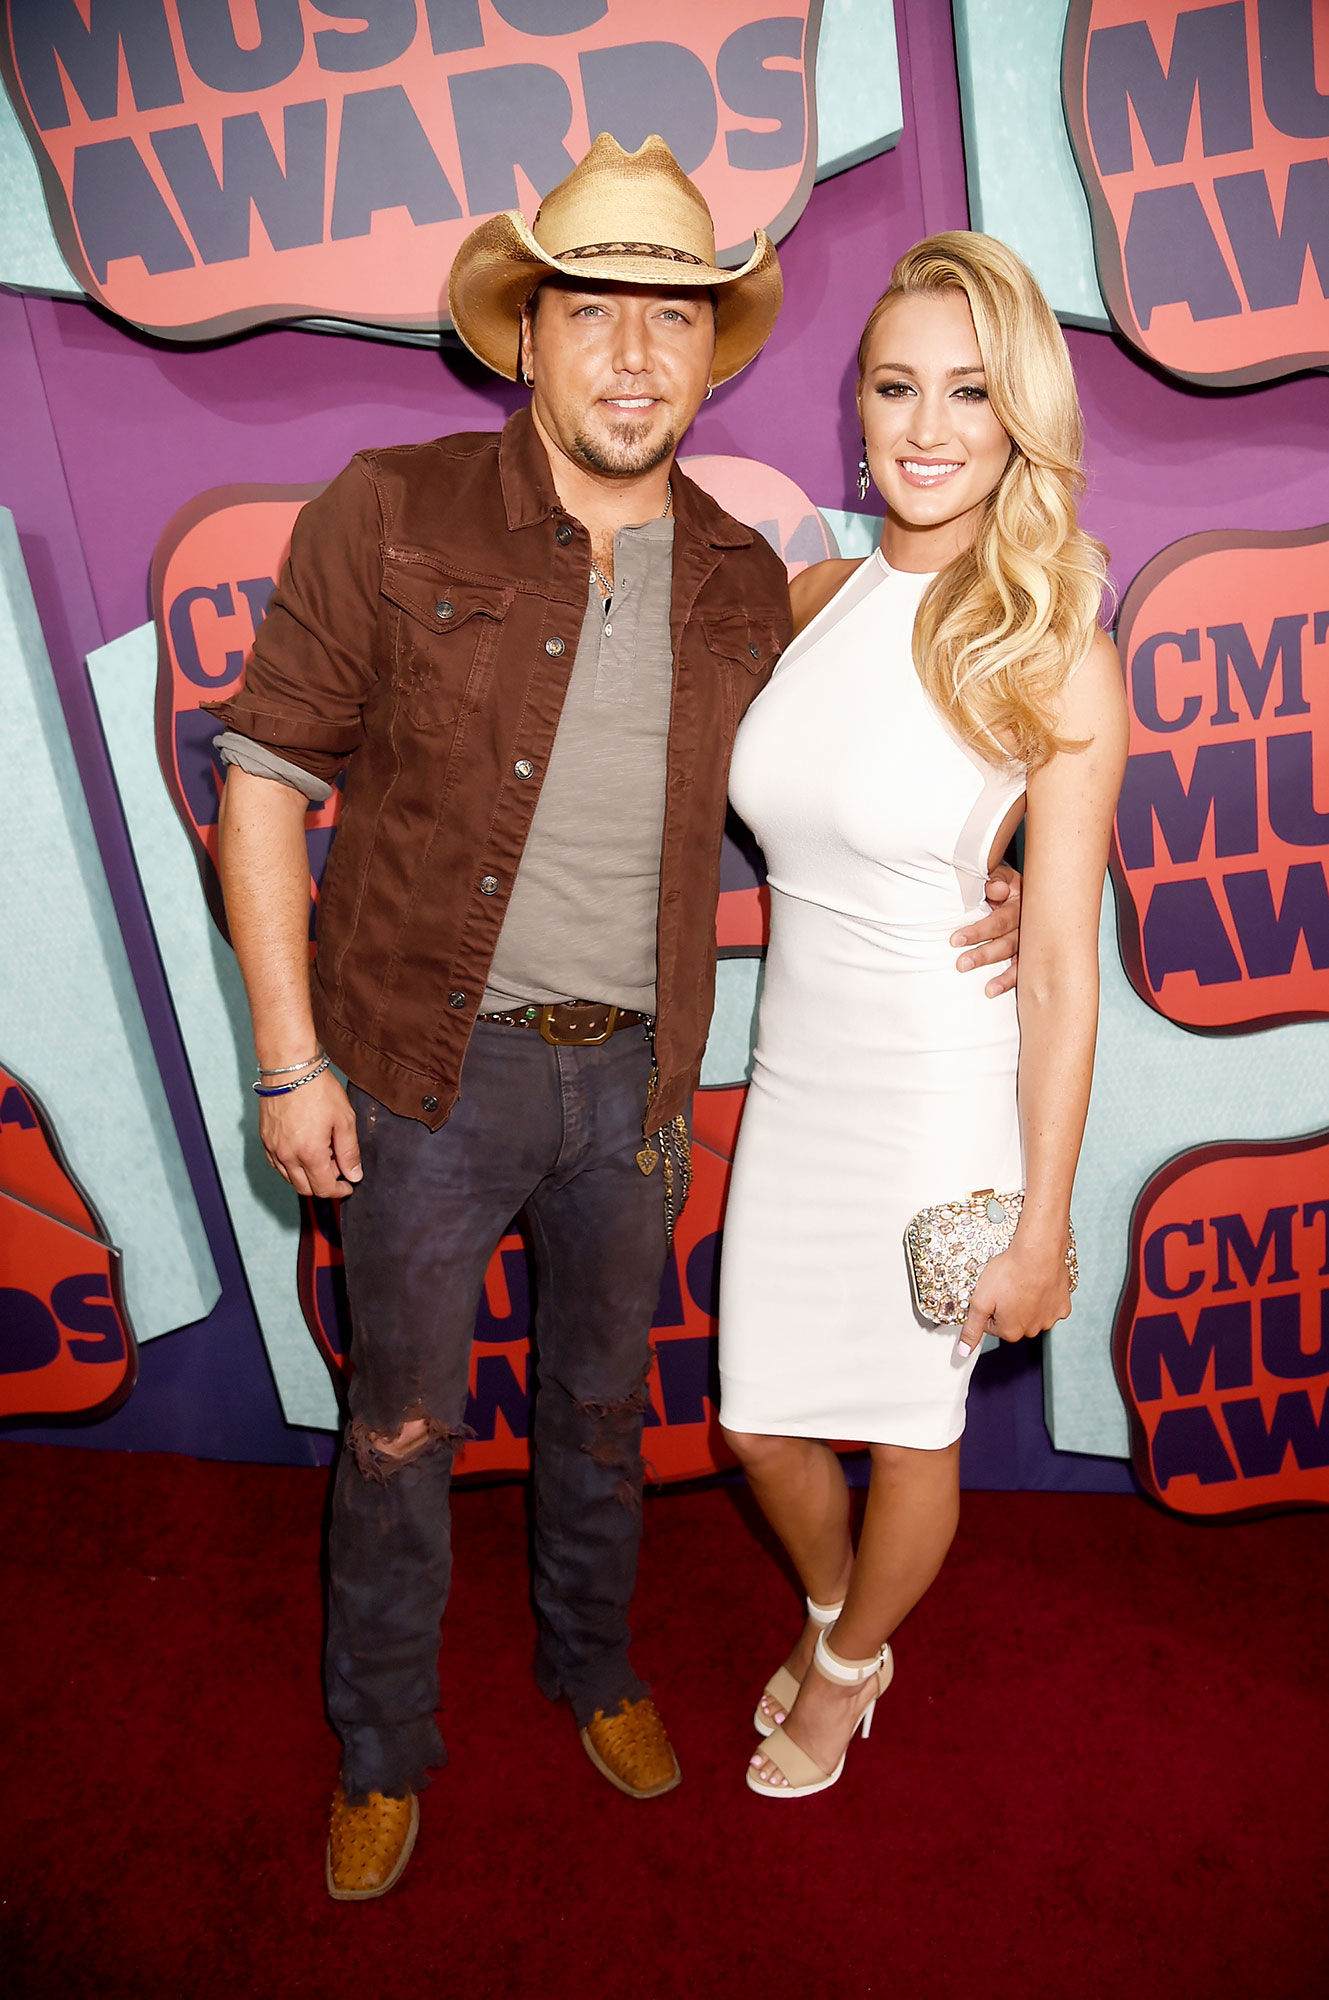 Couples Who Made Their Red Carpet Debuts at an Awards Show - No more hiding! Aldean brought along the former American Idol contestant — who he was famously caught cheating on his wife with in October 2012 — to the 2014 CMT Awards.